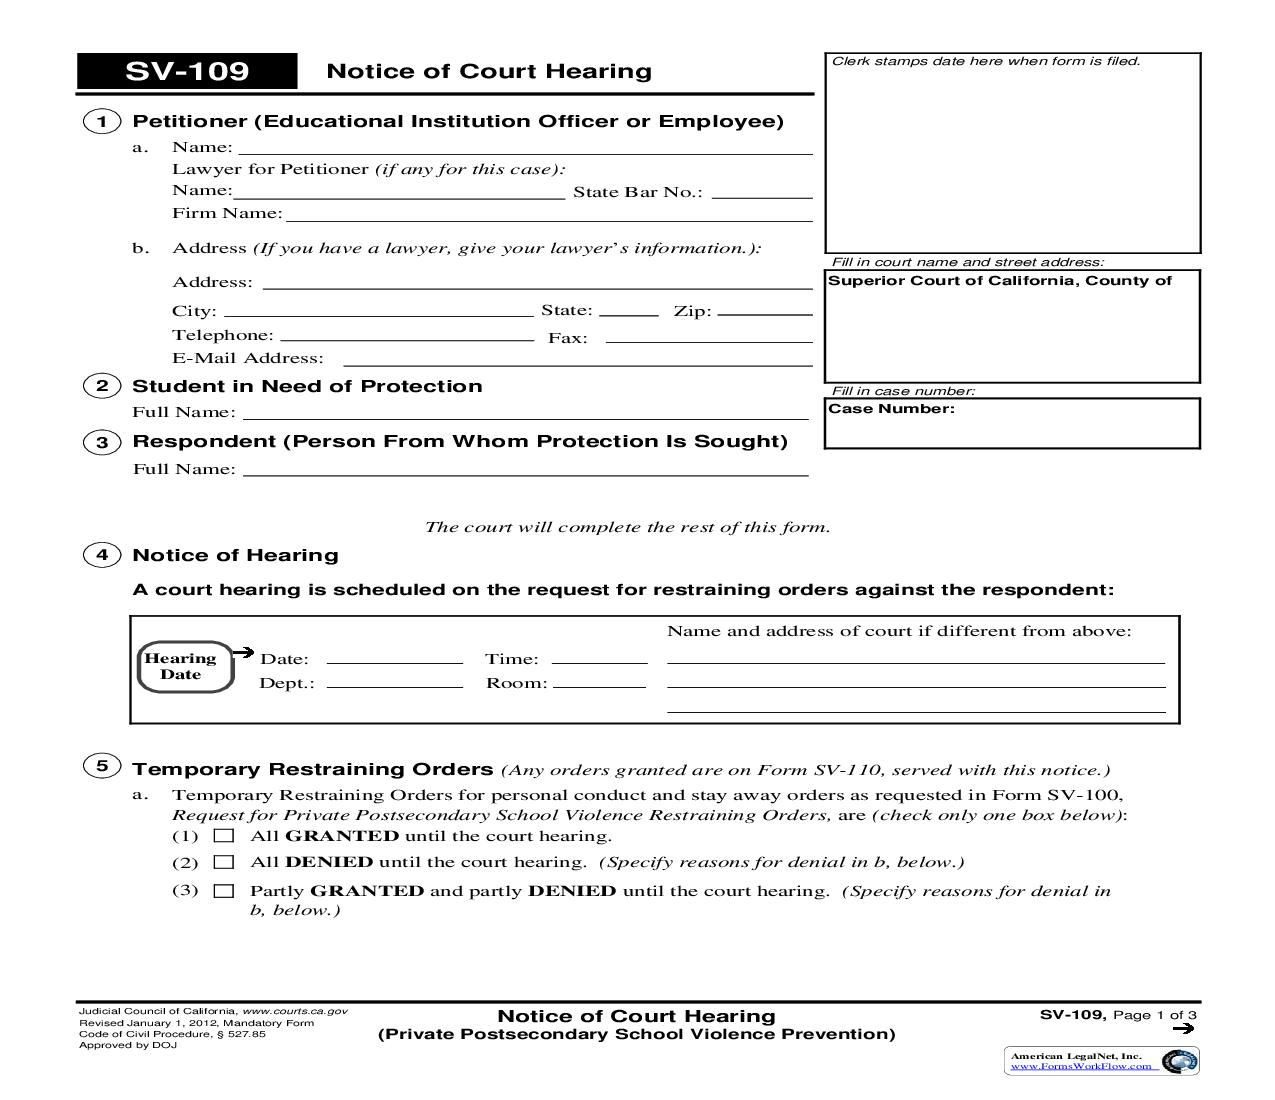 Notice Of Court Hearing (Private Postsecondary School Violence Prevention) {SV-109} | Pdf Fpdf Doc Docx | California